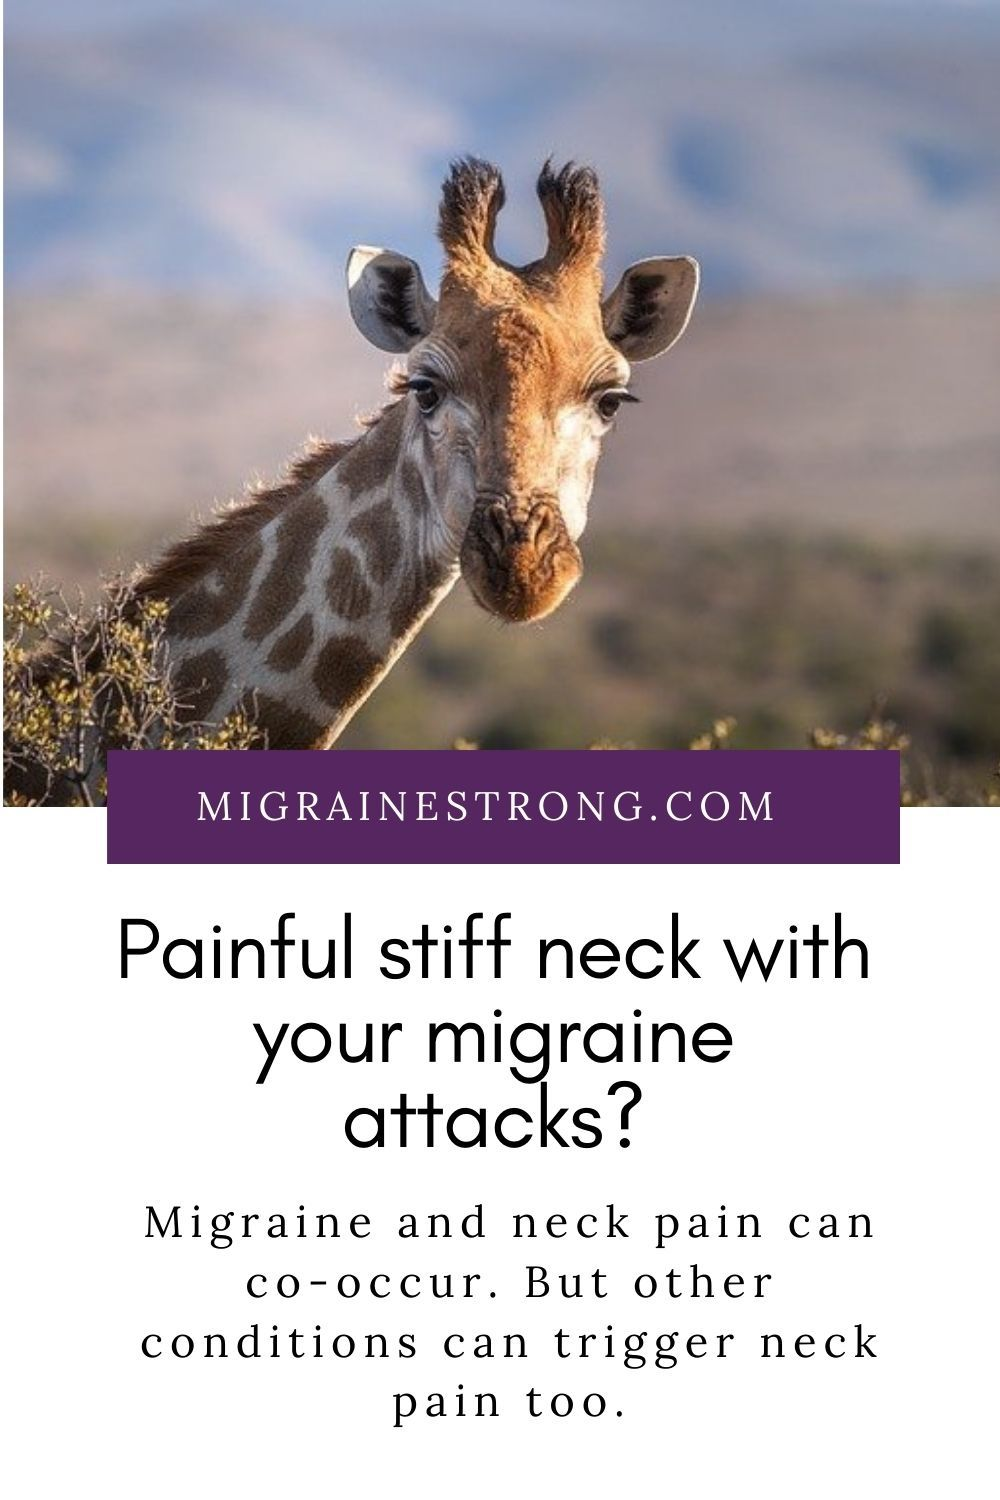 Painful stiff neck with your migraine attacks?